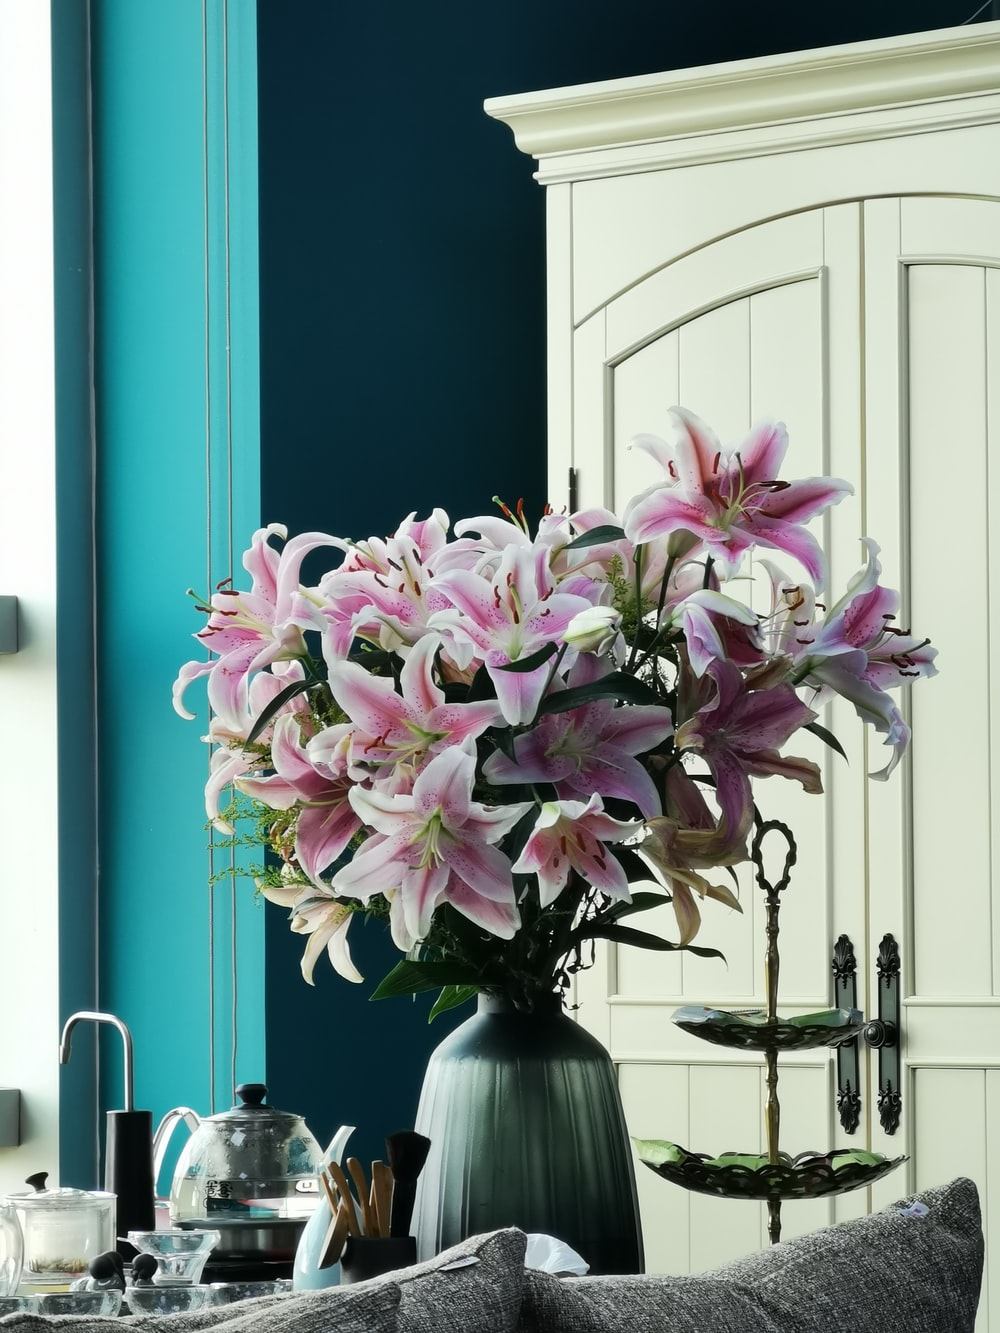 pink-and-white petaled flower plant near items and furniture